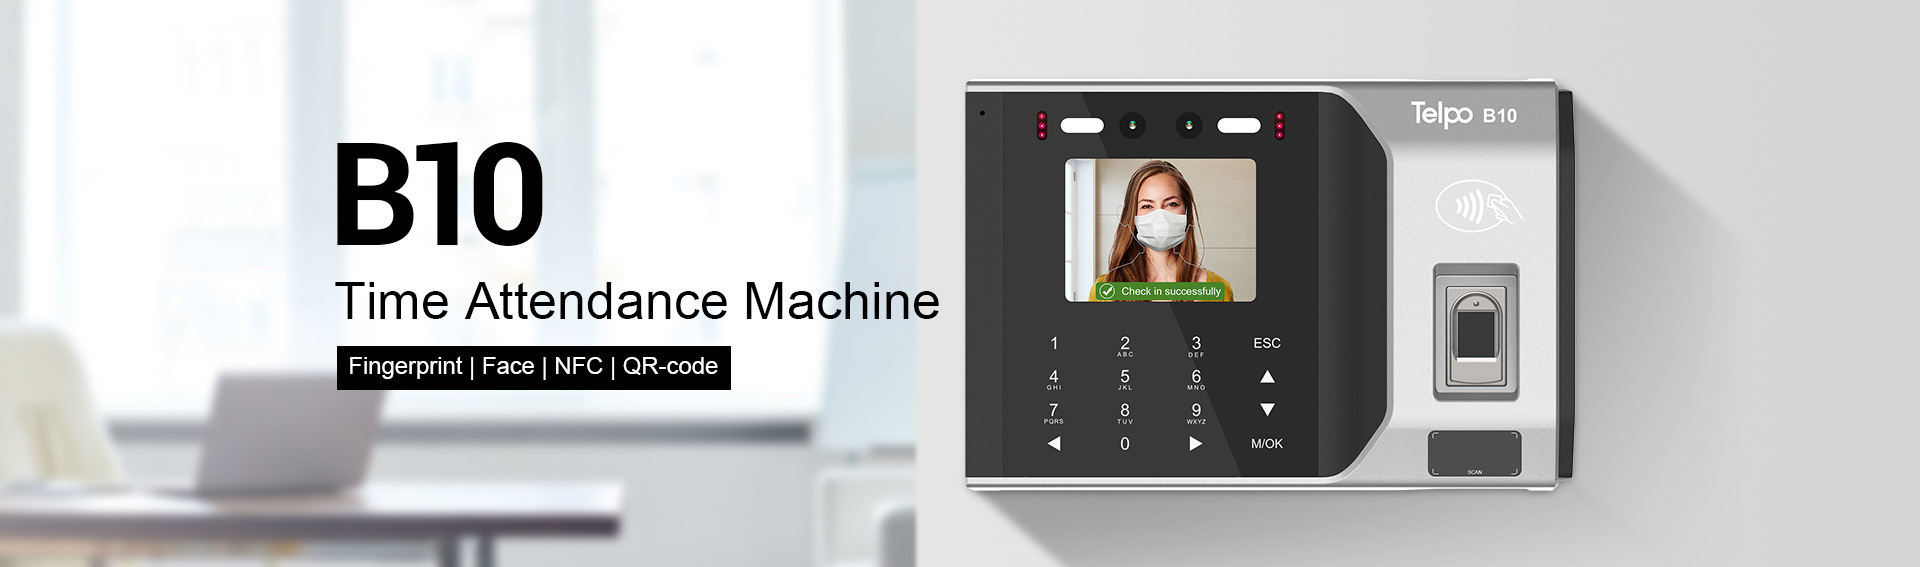 Time Attendance and Access Control Machine with Face recognition and Fingerprint reader